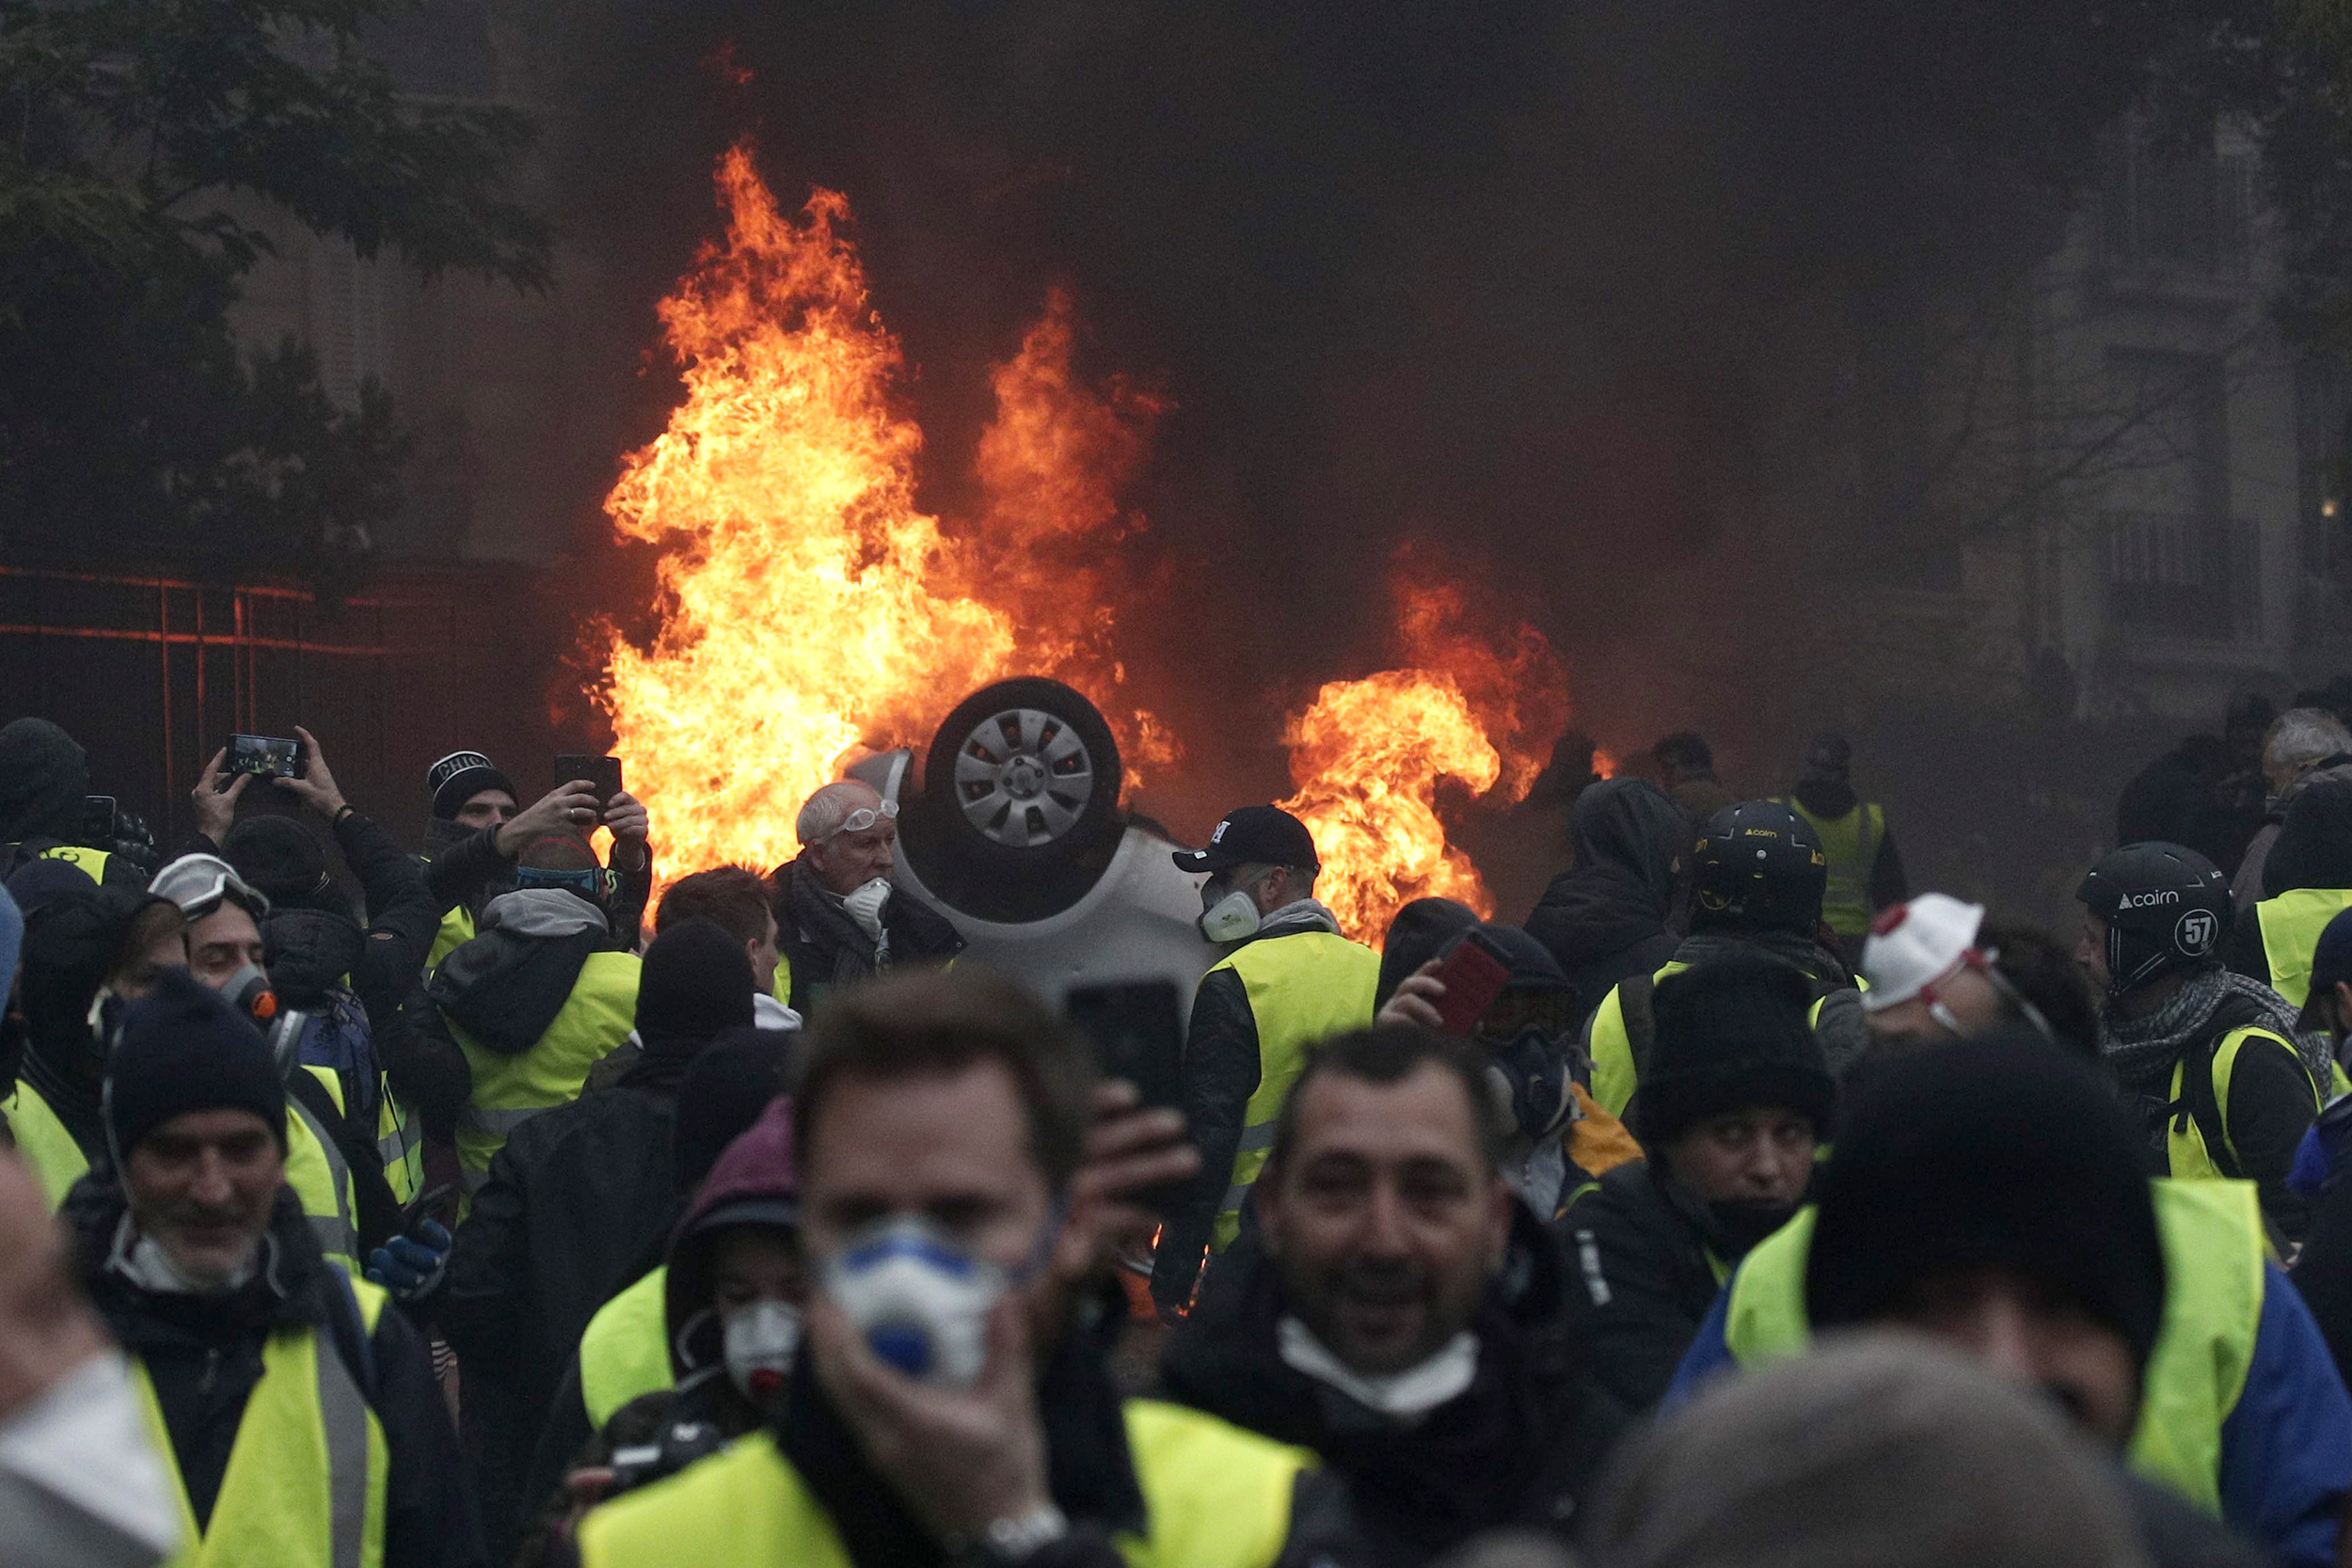 France S Violent Yellow Vest Protests Are About Much More Than A Fuel Tax But Is President Macron Listening